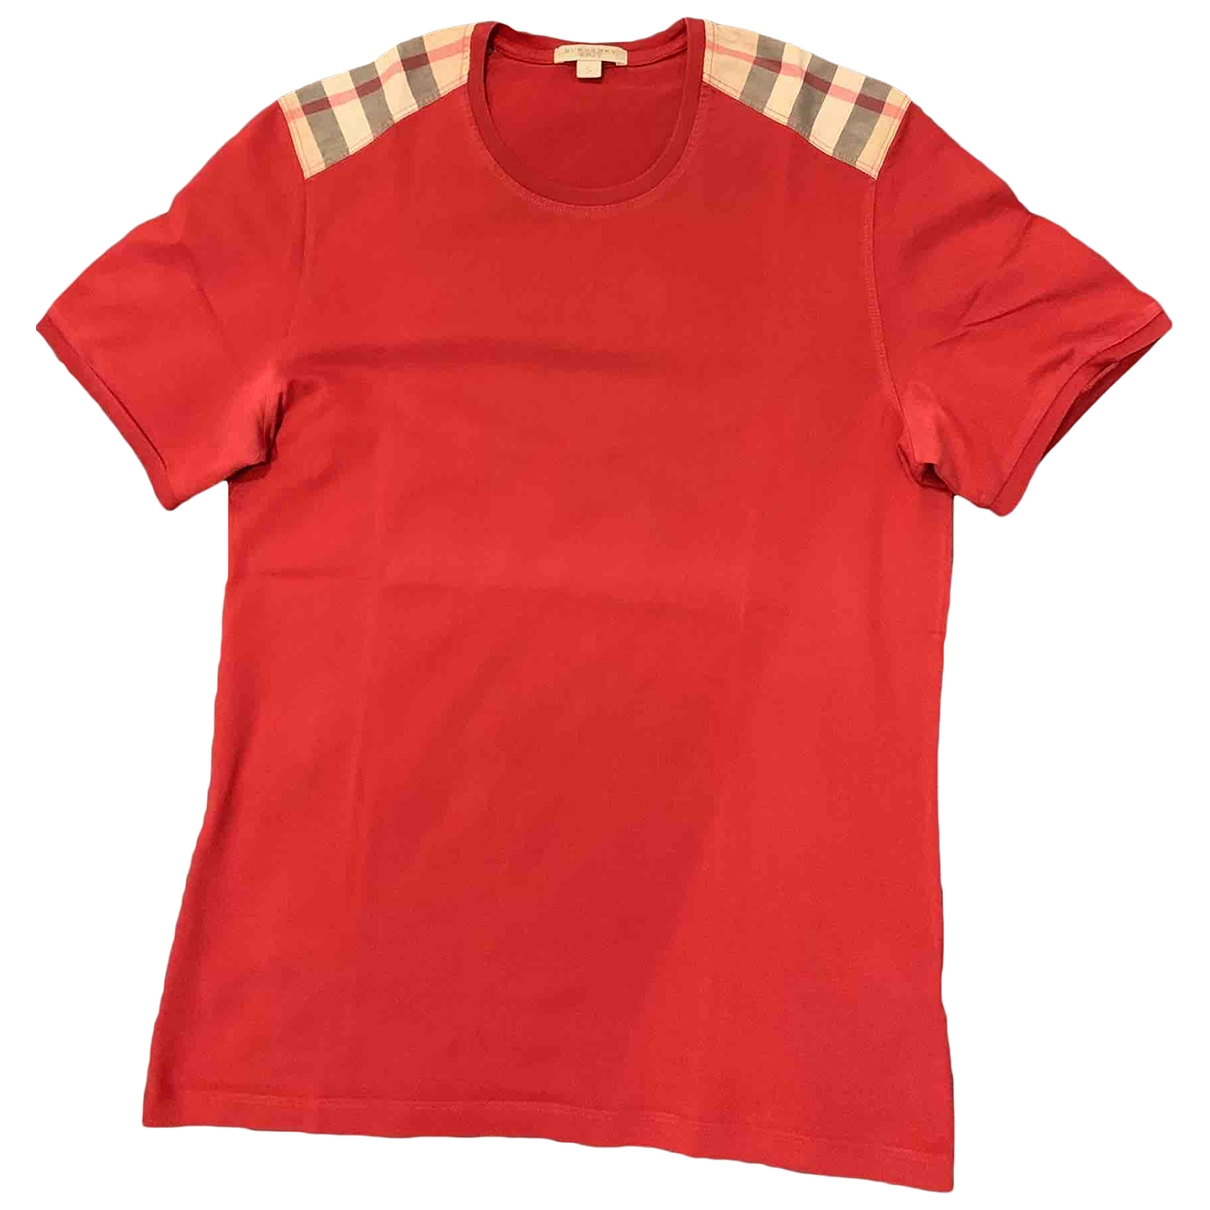 Burberry \N Red Cotton T-shirts for Men S International